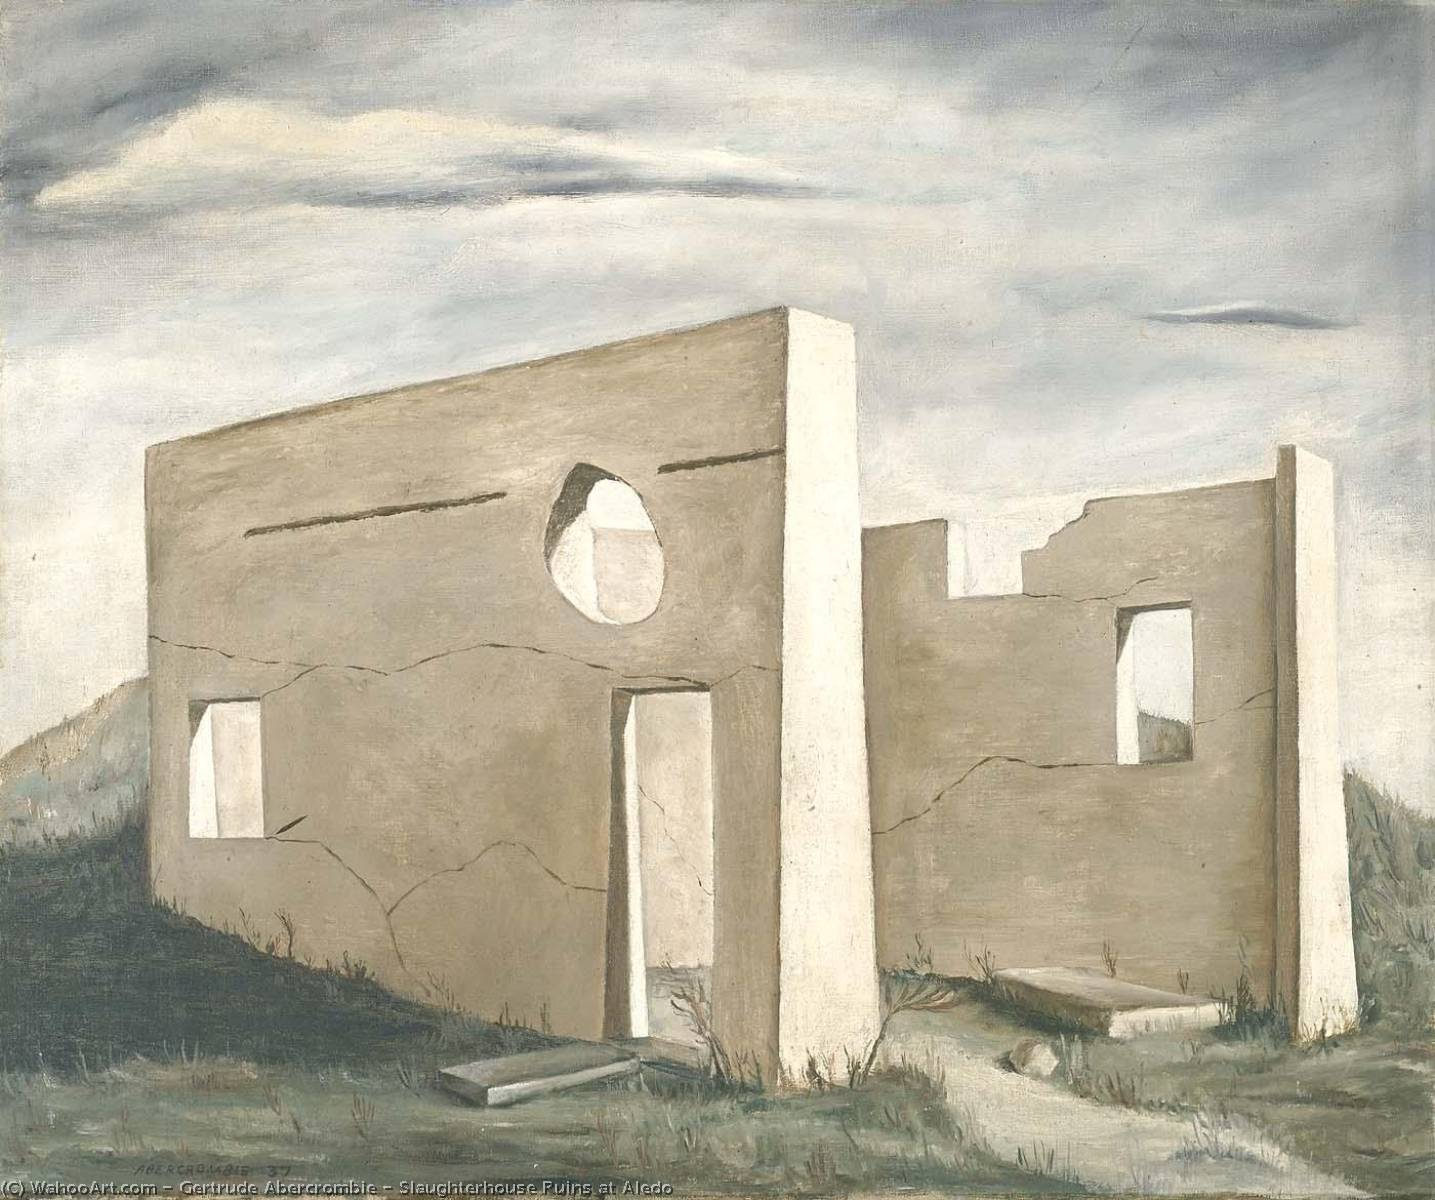 Slaughterhouse Ruins at Aledo, 1937 by Gertrude Abercrombie (1909-1977, United States) | Famous Paintings Reproductions | WahooArt.com